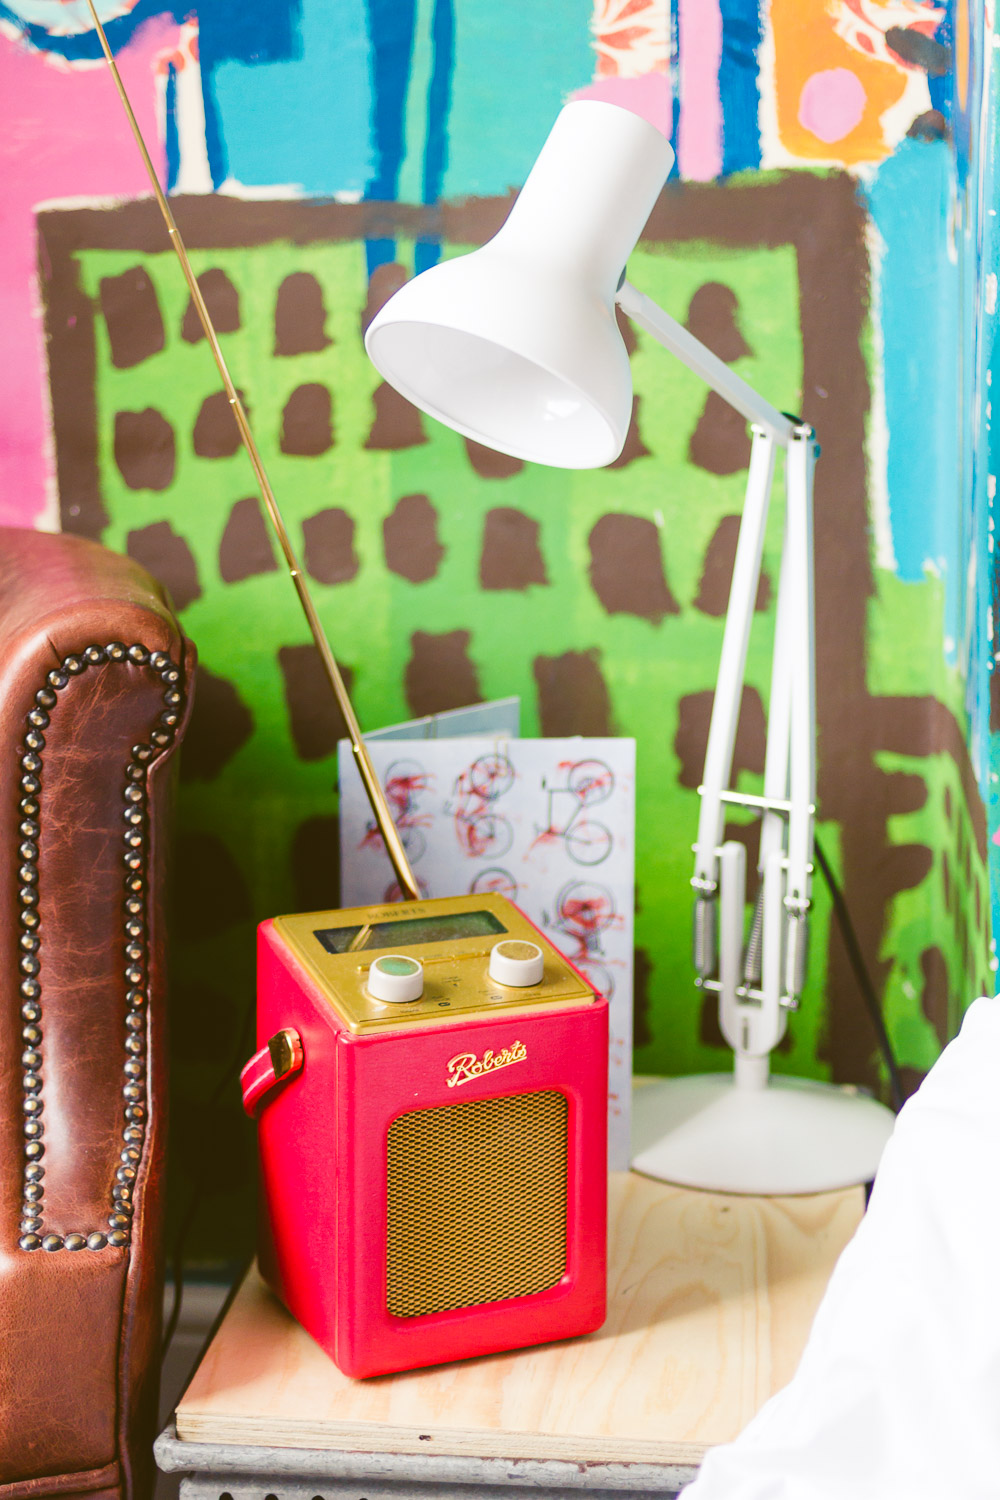 Artist residence hotel brighton colourful fun indie place to stay bedside table